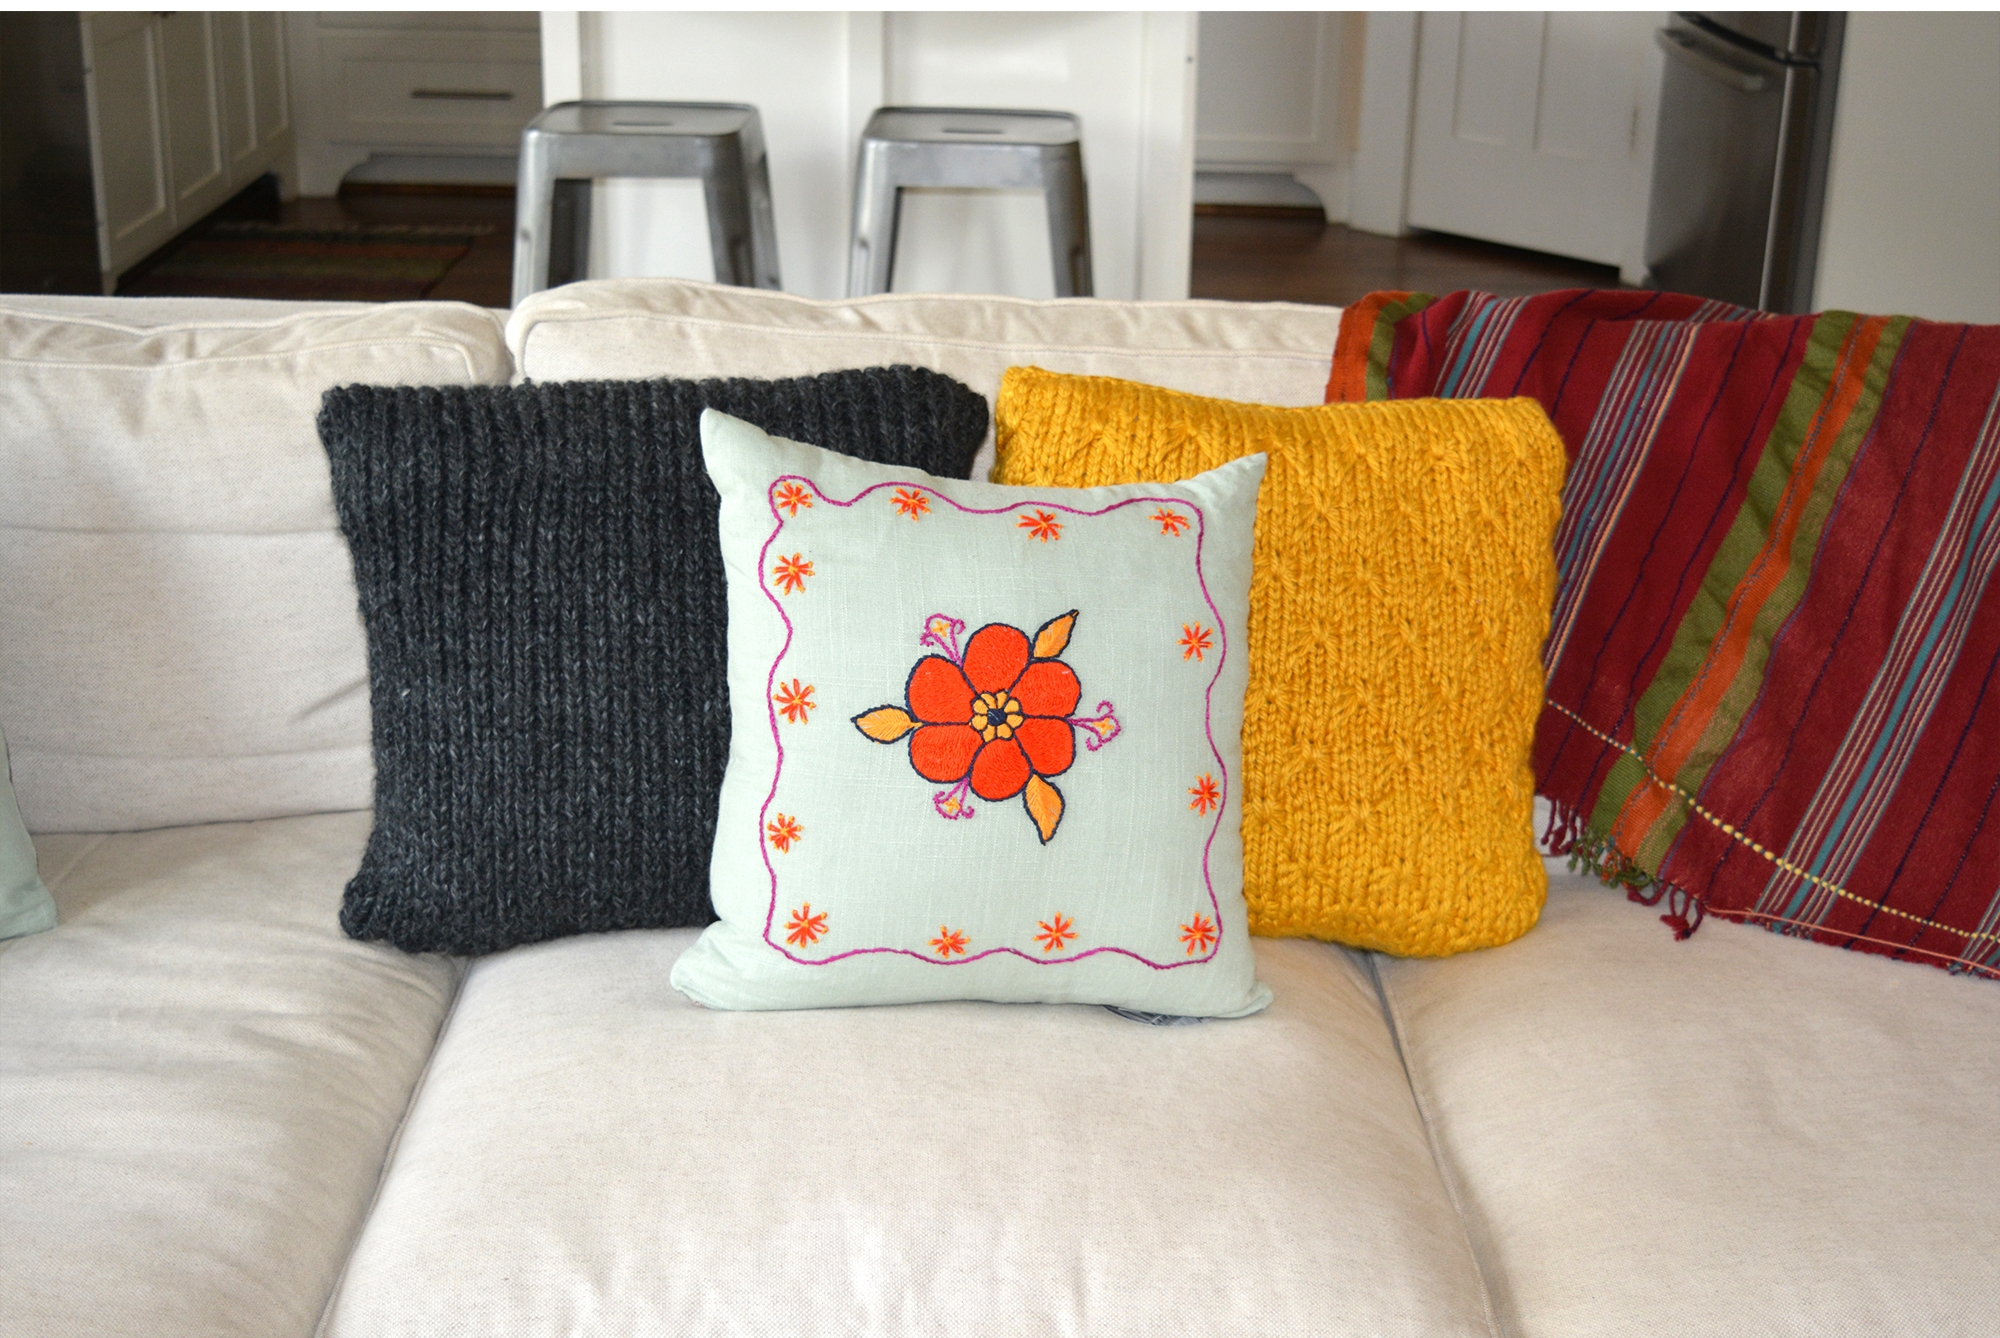 knit and embroidered pillows on couch for web.jpg